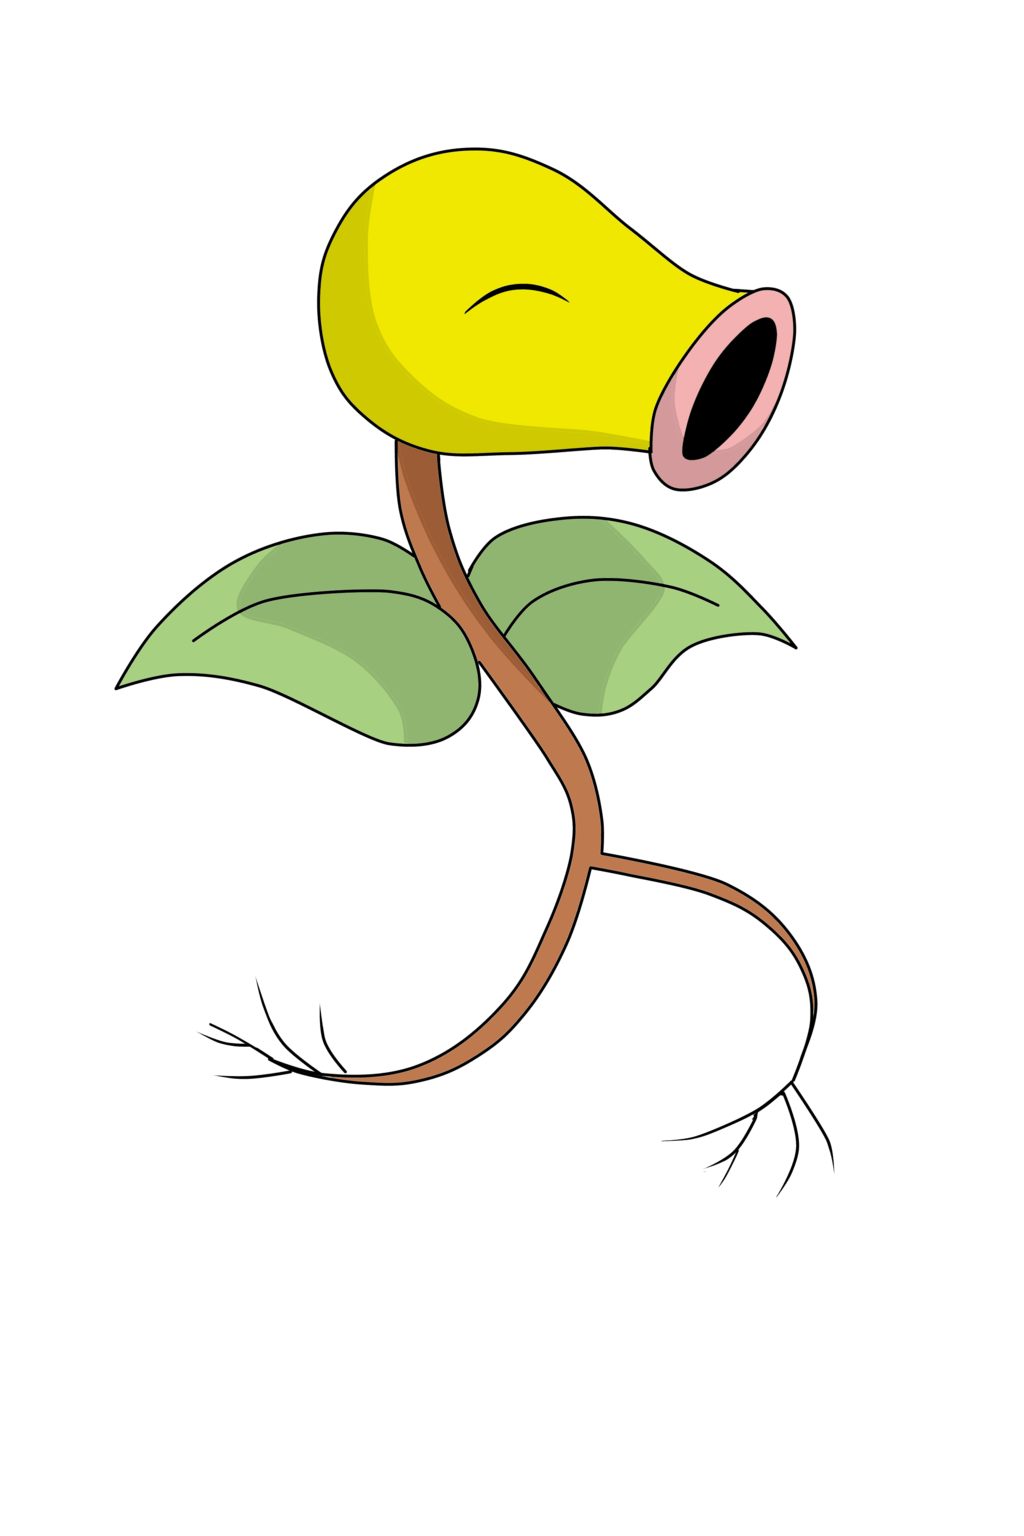 Grass Collab-Bellsprout:. by xGoldenLocks on DeviantArt